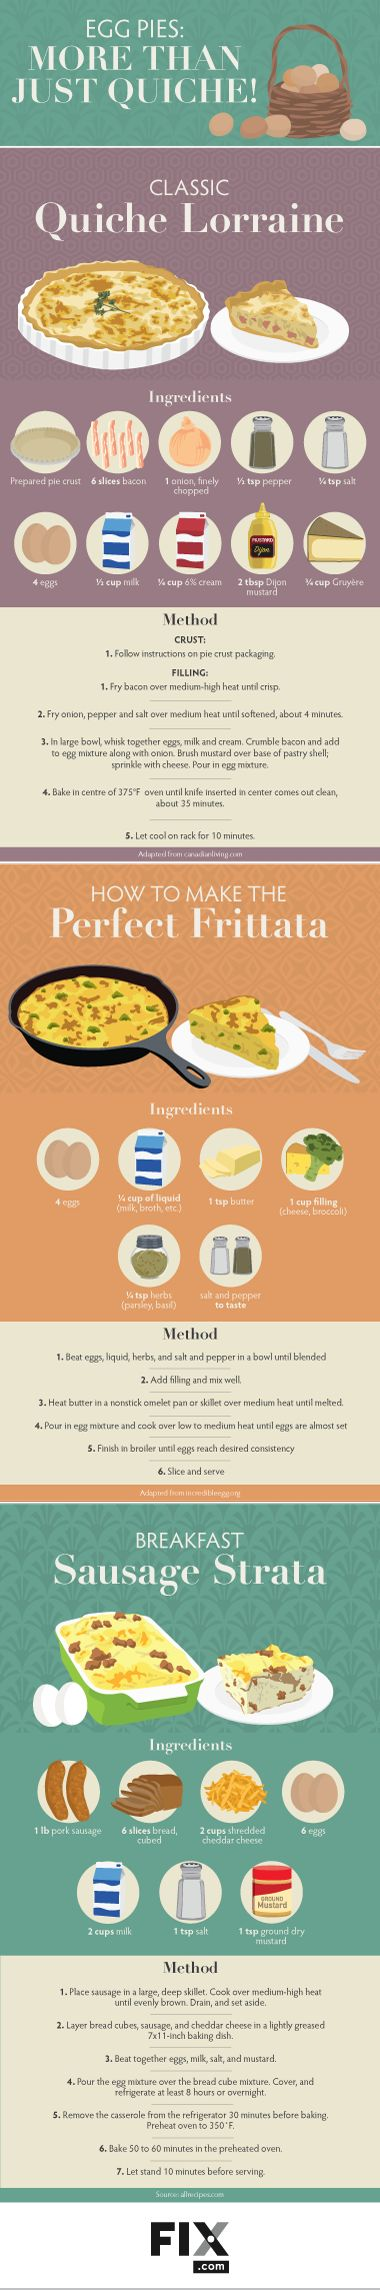 Read our classic quiche lorraine recipe, plus recipes for other egg pies such as frittata, breakfast sausage strata and more!